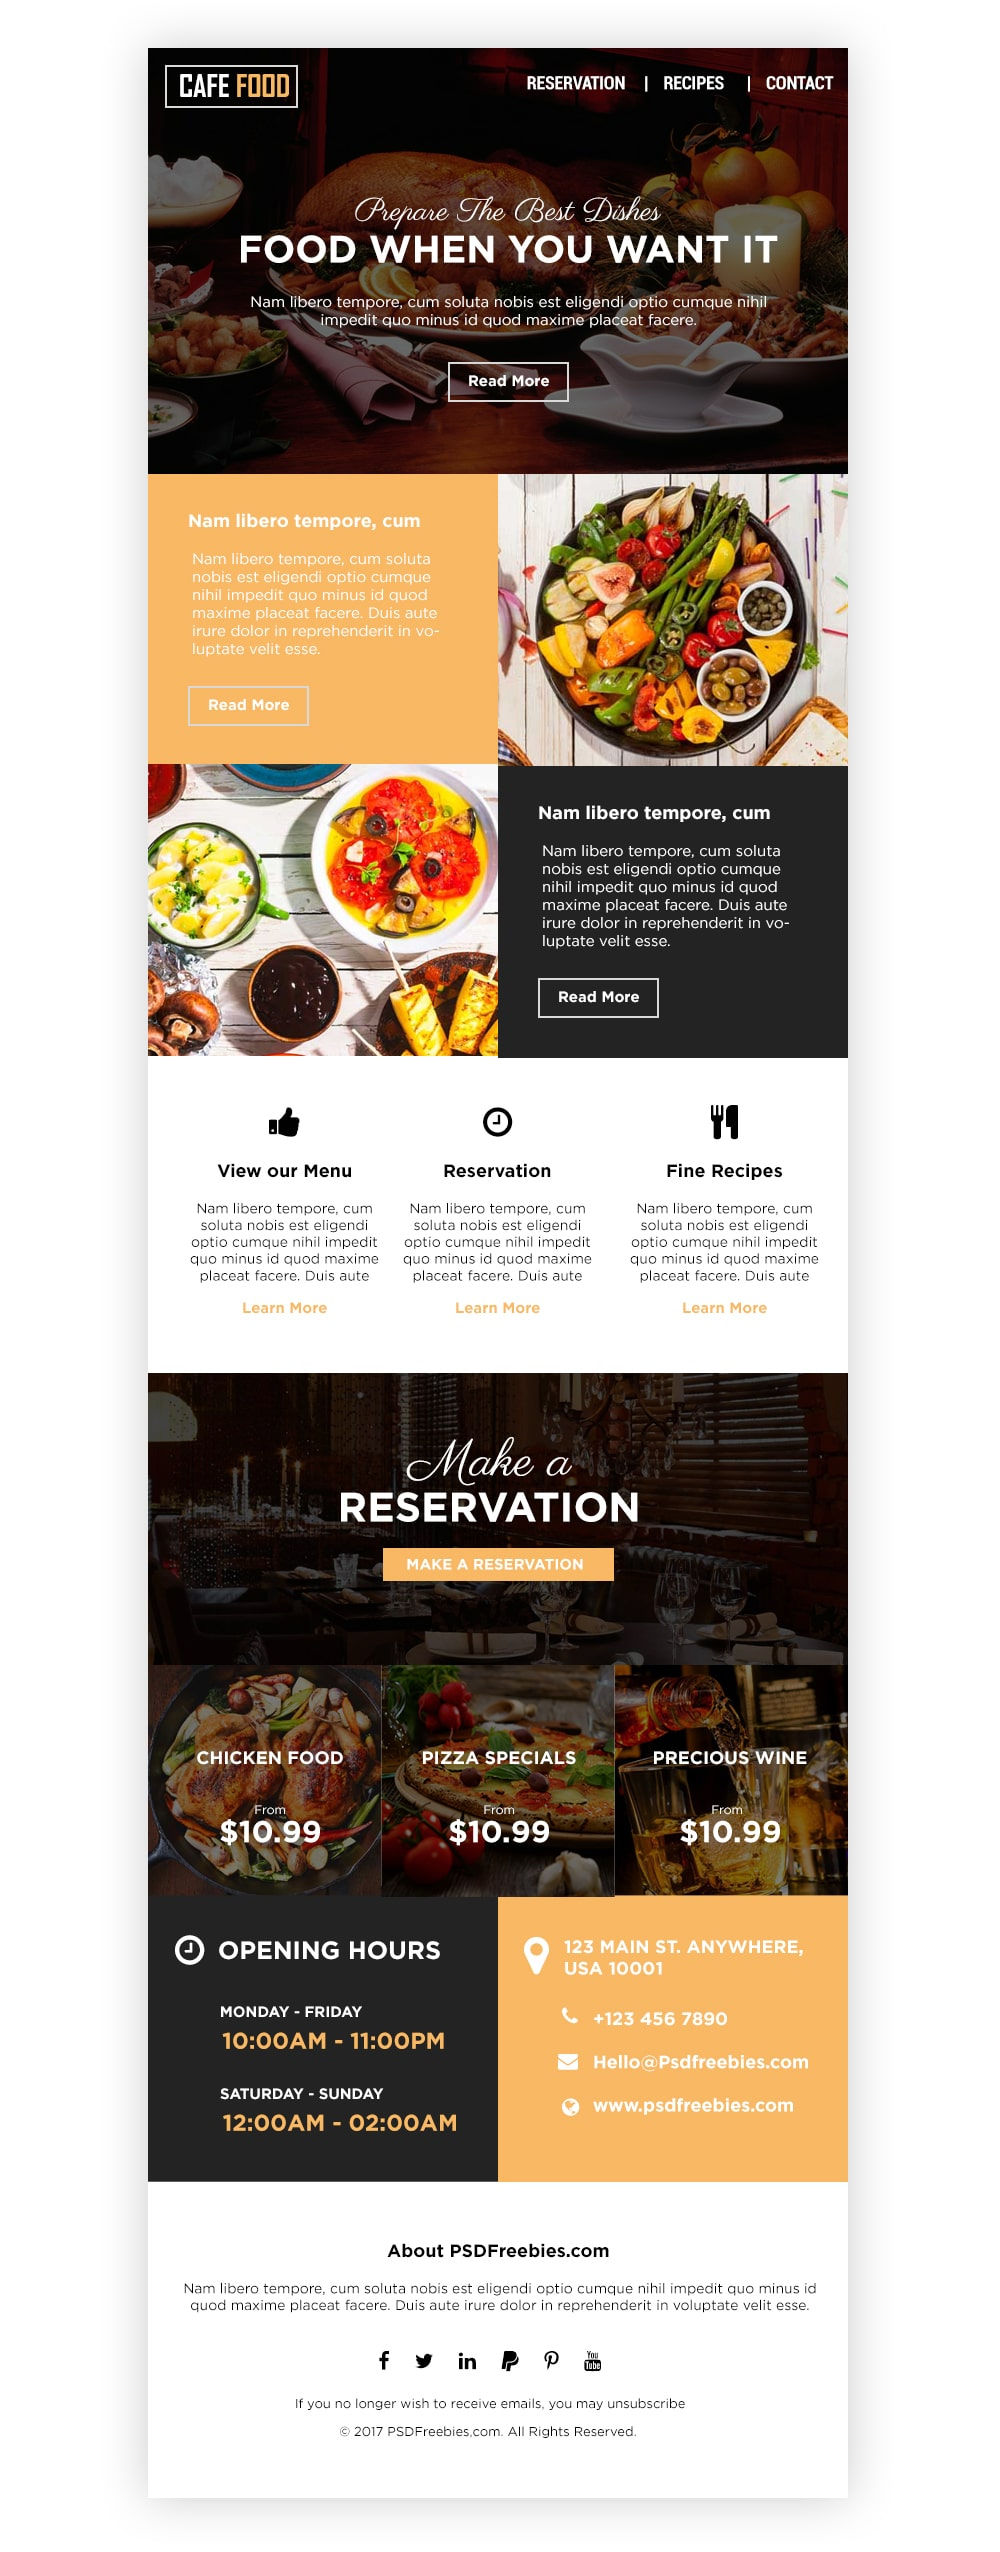 Food and Restaurant E-newsletters Template PSD